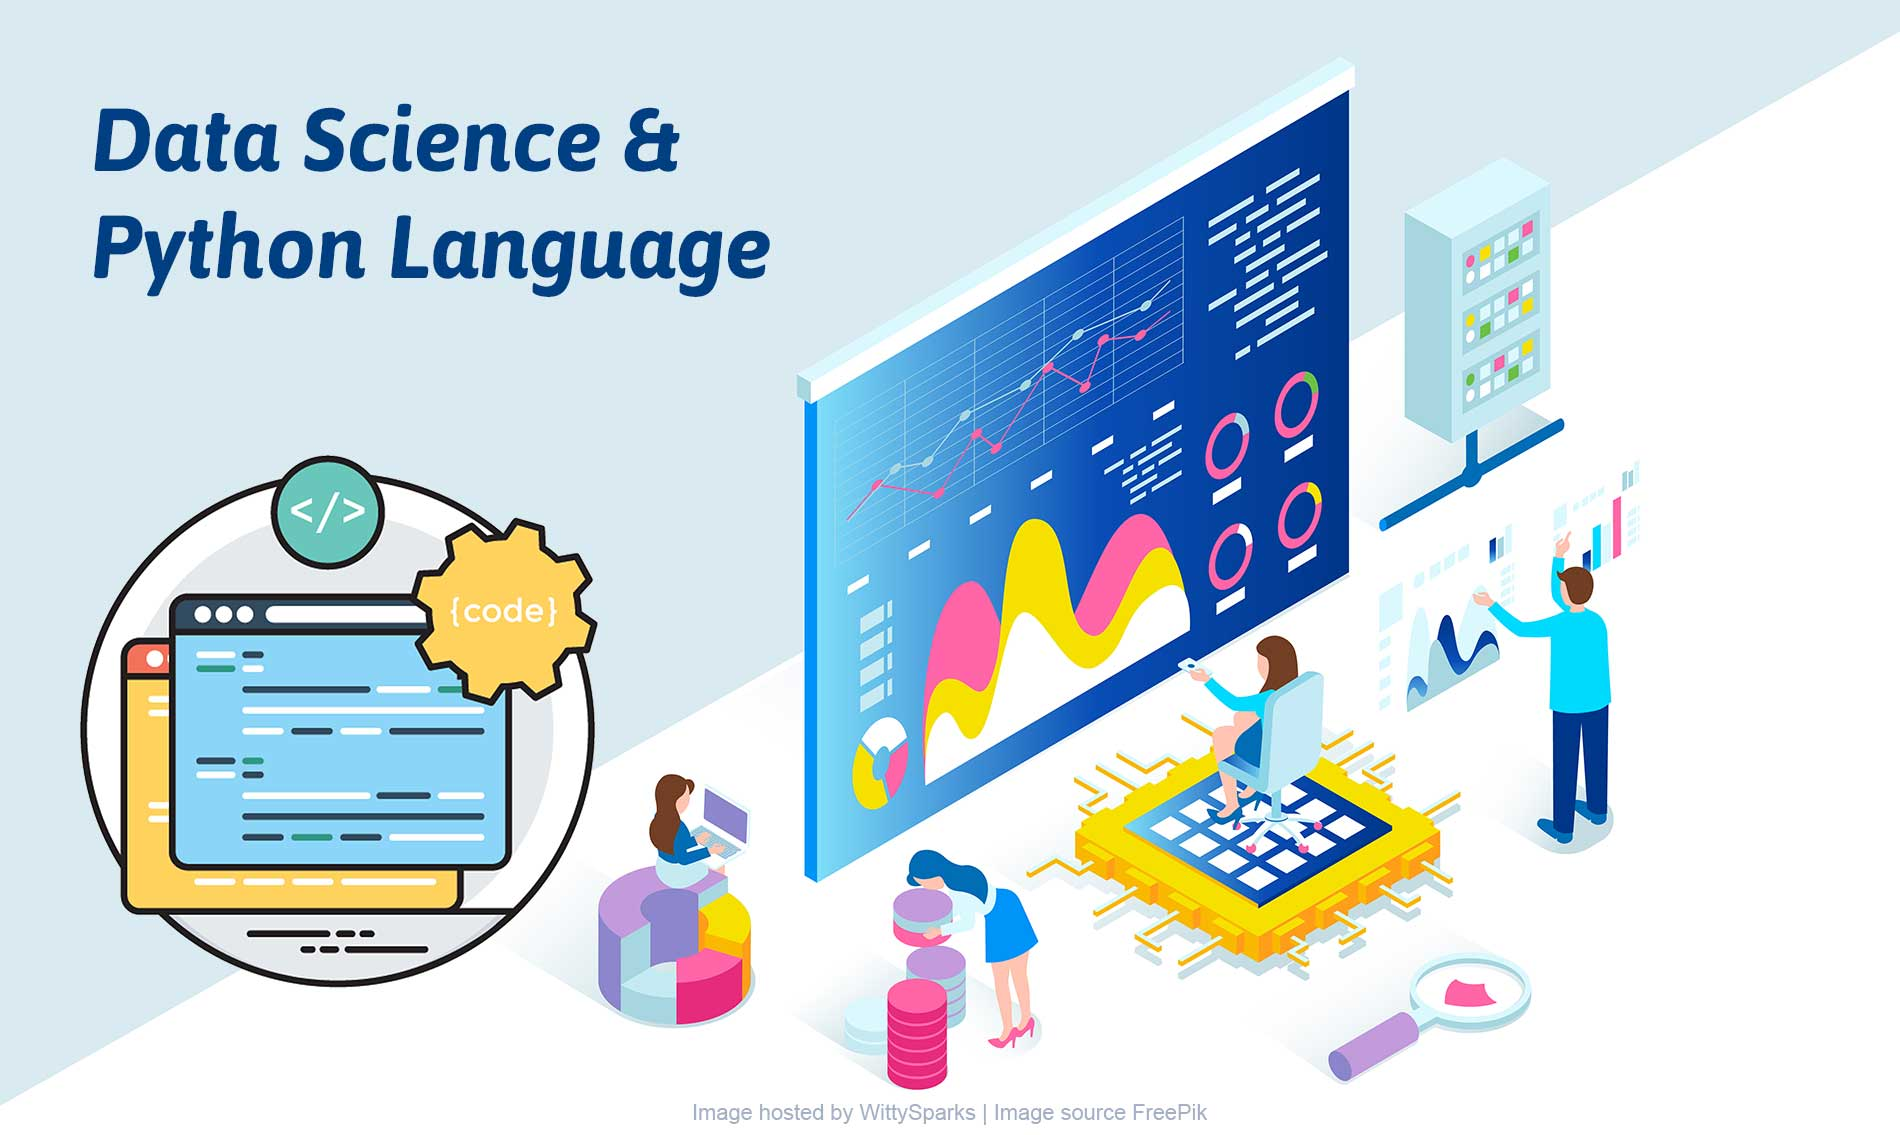 Learn Data Science and Python Language